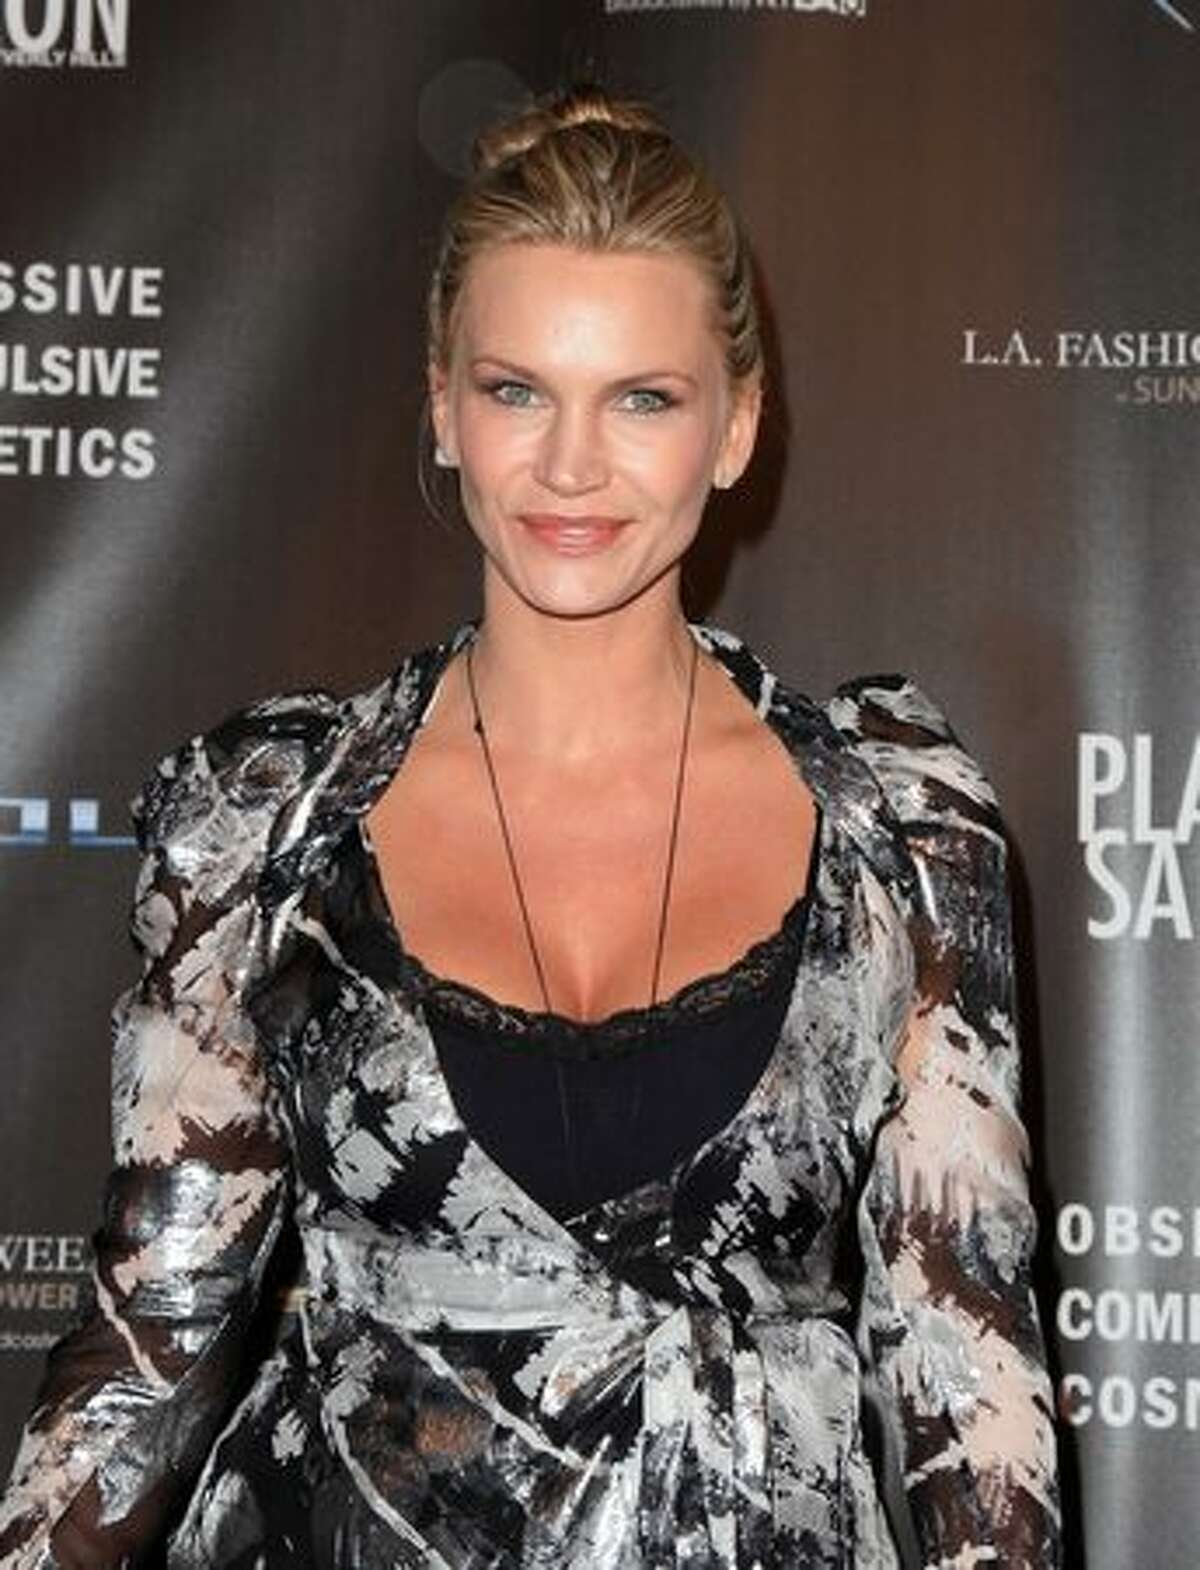 Actress Natasha Henstridge arrives at the WTB Spring 2011 Fashion Show at Sunset Gower Studios in Los Angeles, California.